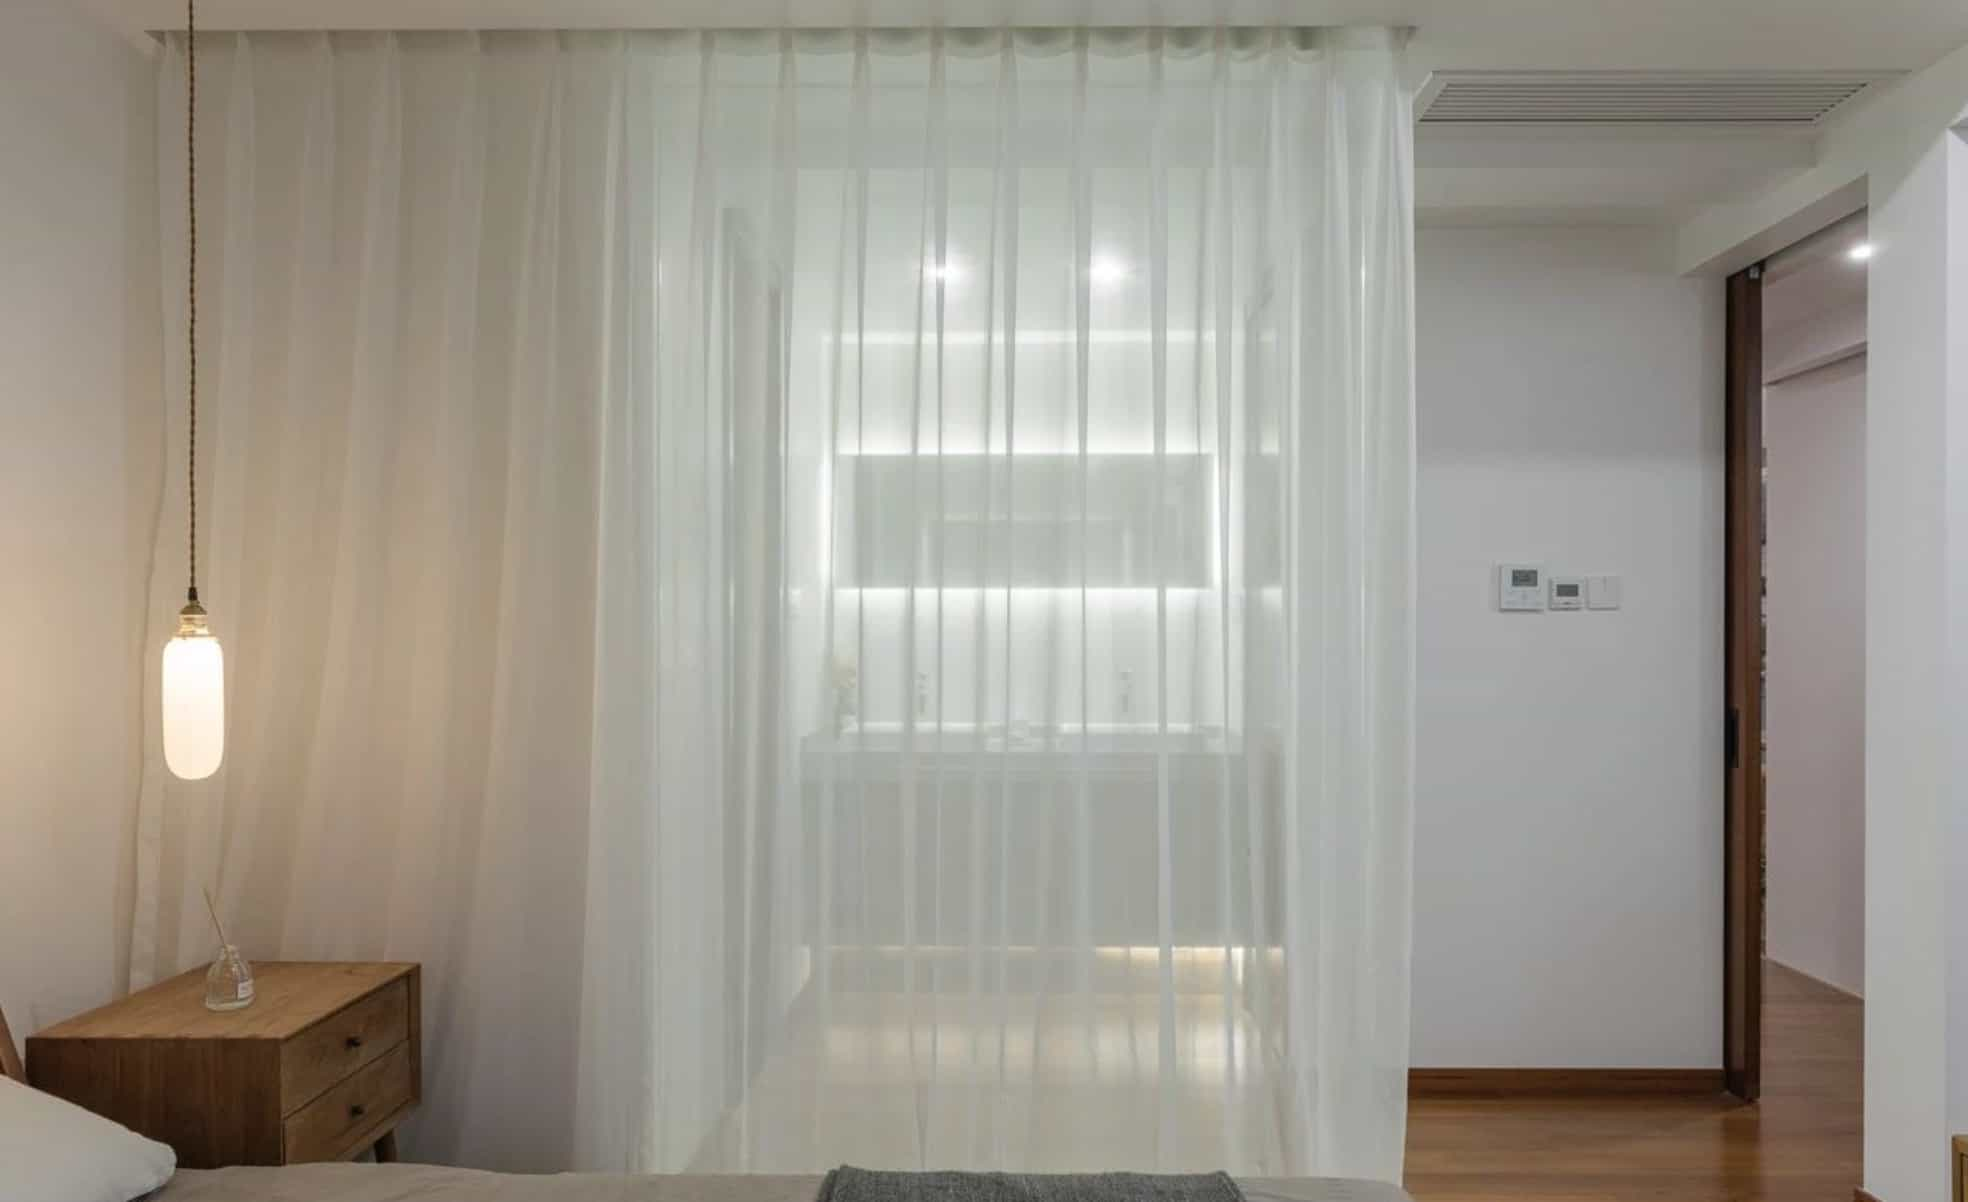 floor-to-ceiling curtains